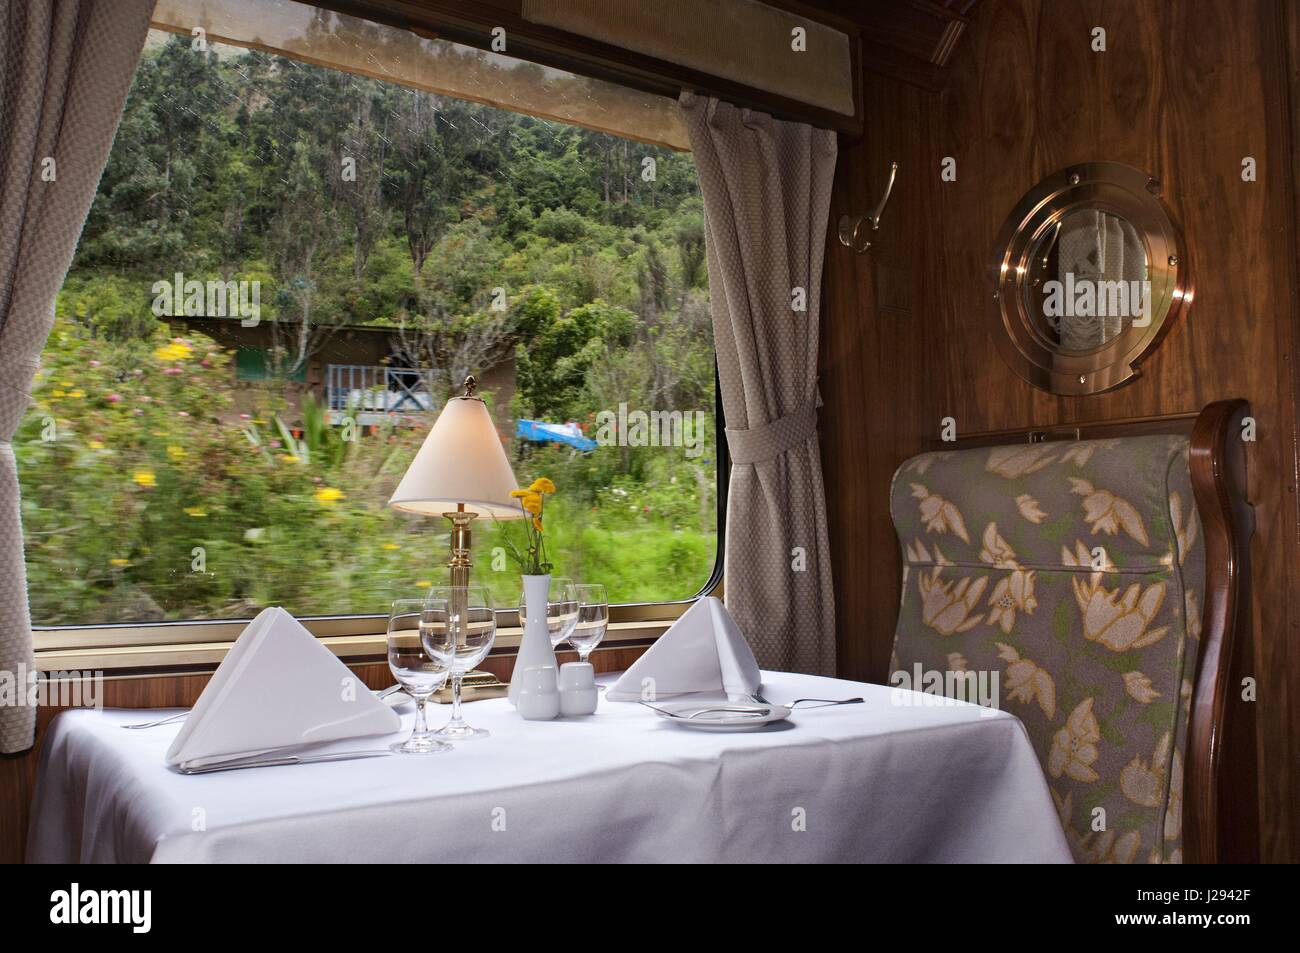 Pullman Carriages Stockfotos & Pullman Carriages Bilder - Alamy